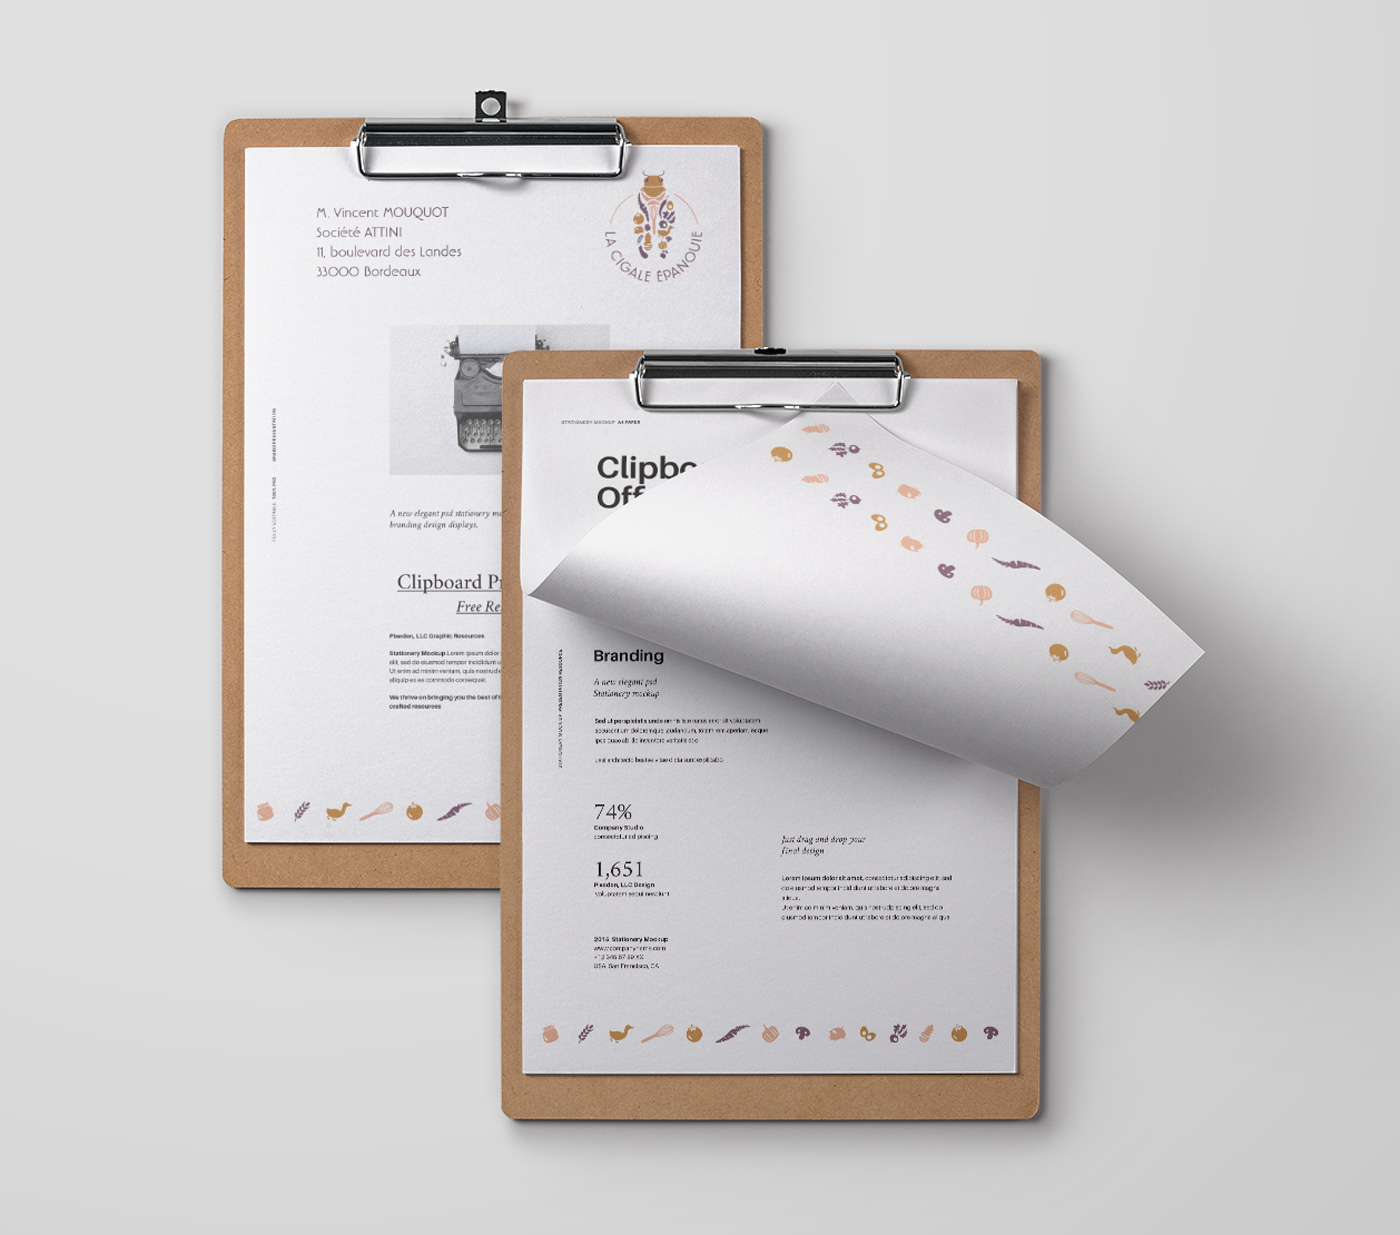 Clipboard-cigale-epanouie-design